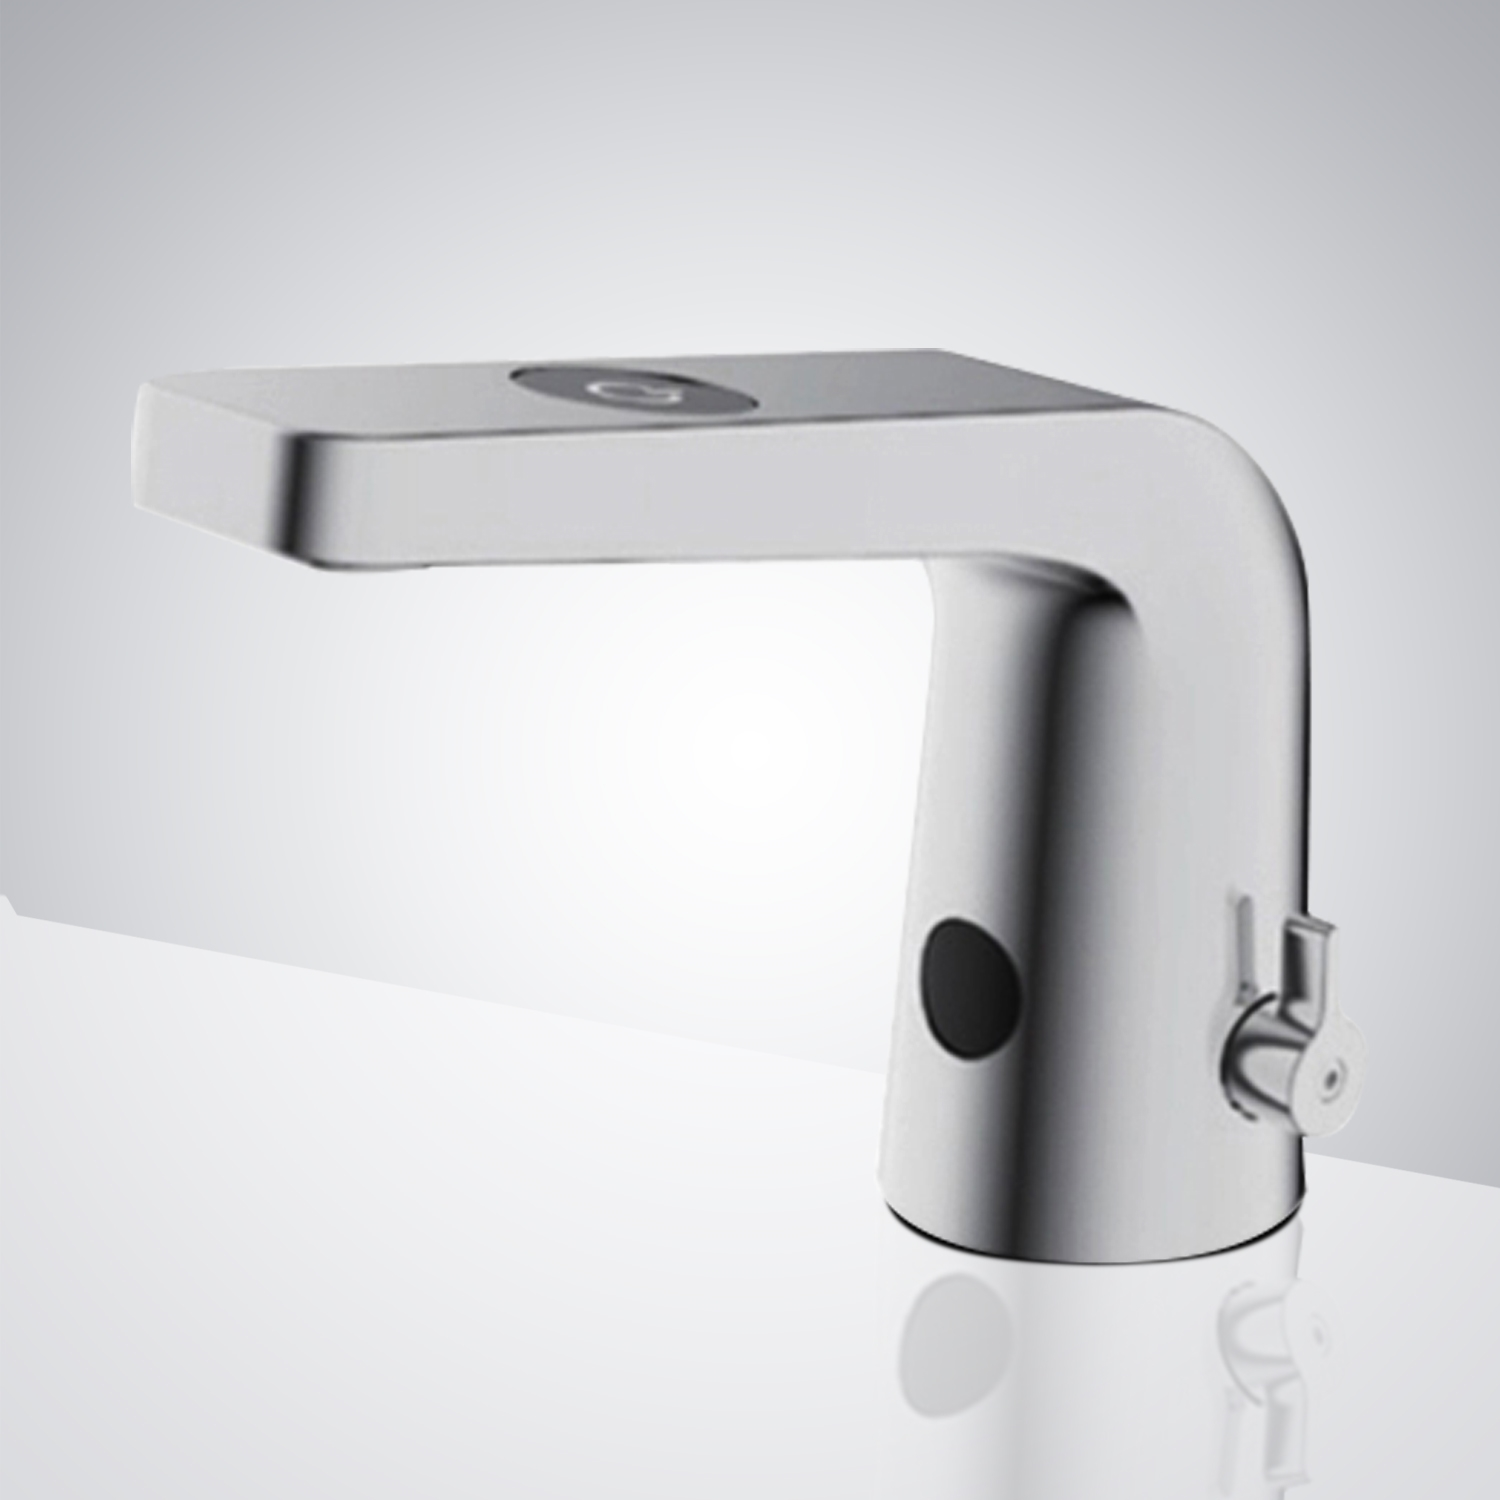 Fontana Reno Commercial Temperature Control Chrome Automatic Infra-Red Sensor Sink Faucet